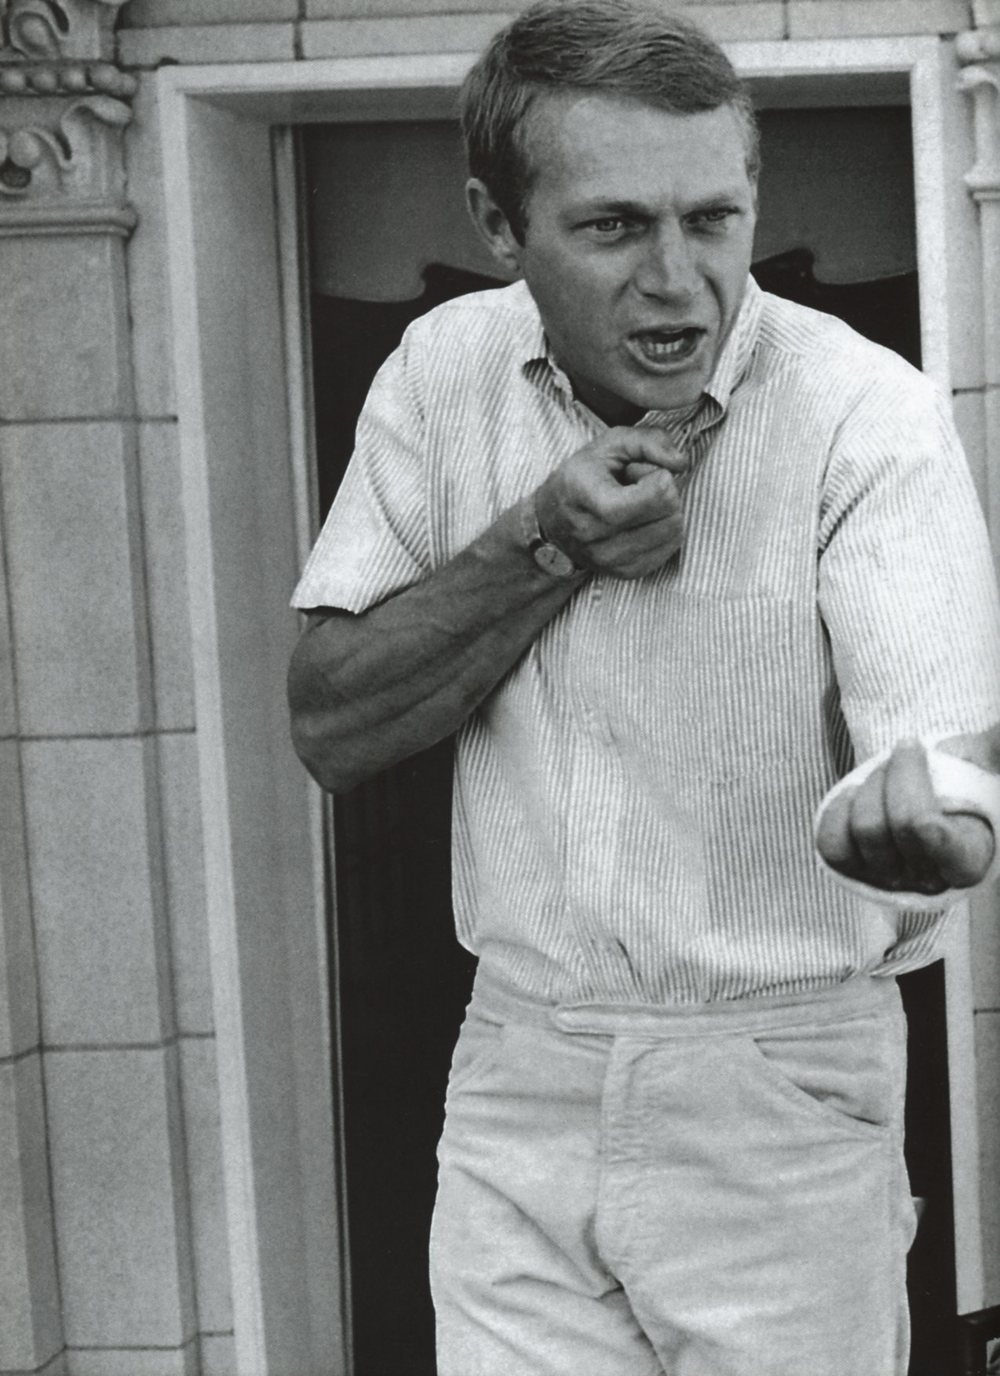 Steve-Mcqueen-William-Claxton-Photograghs-10.jpg